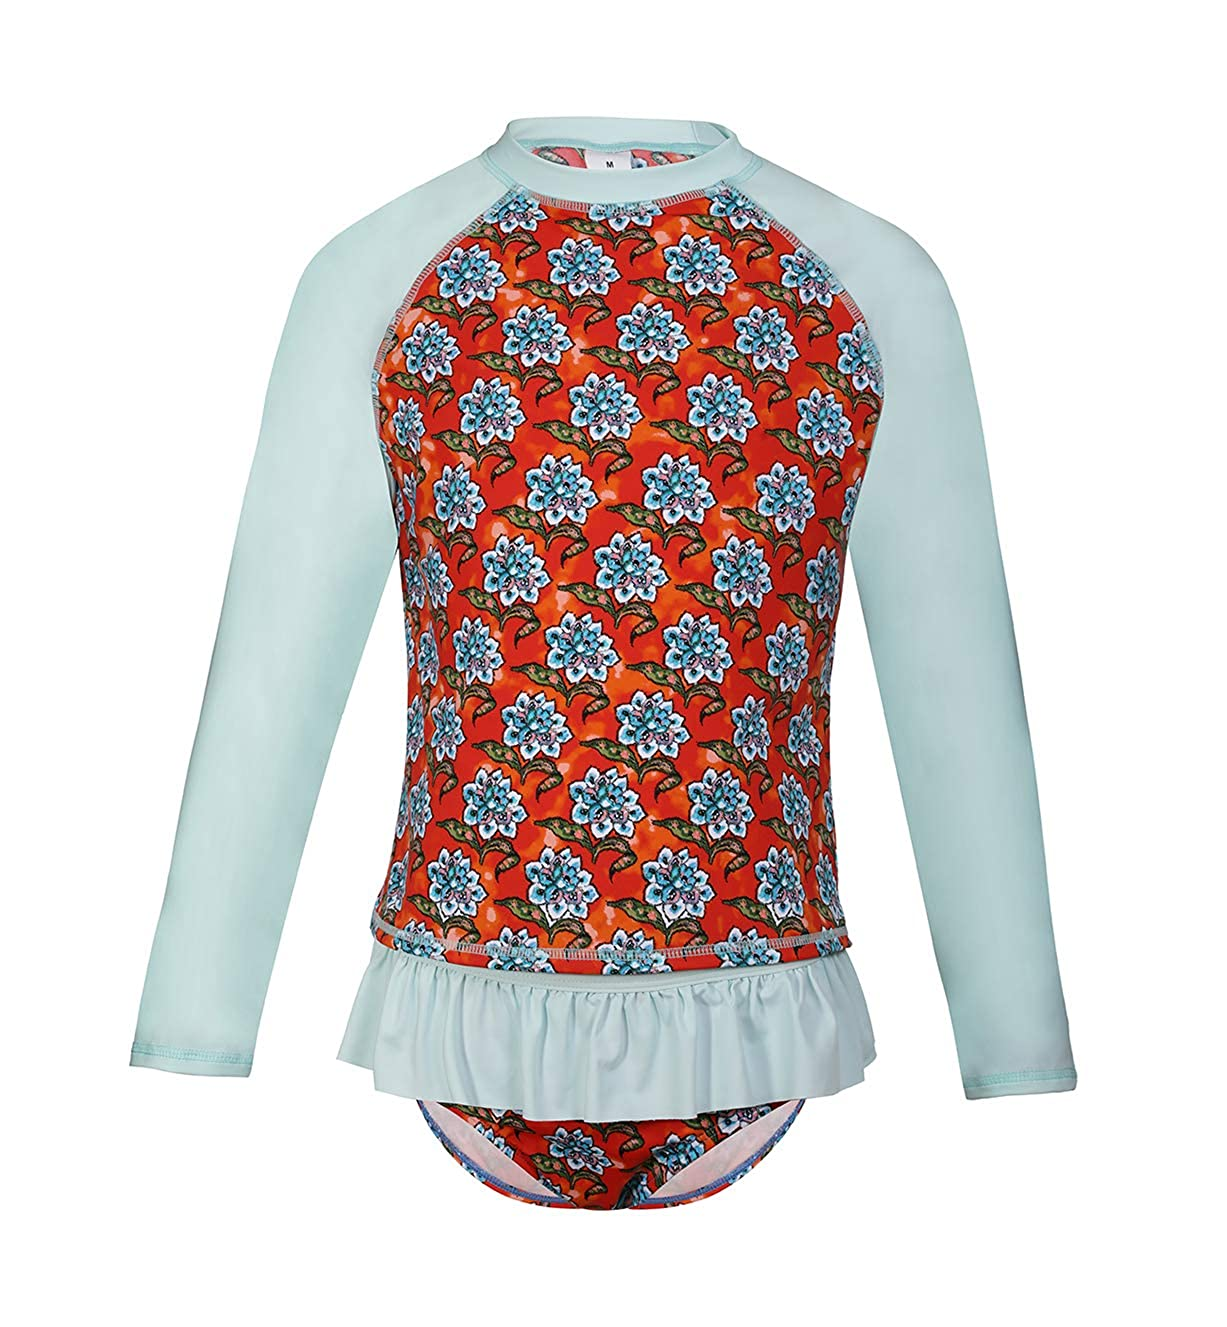 LEINASEN Kids Long Sleeve Two Piece Rash Guard Swimsuit Set for Girls Floral Ruffle Bathing Suits 5-14 Years